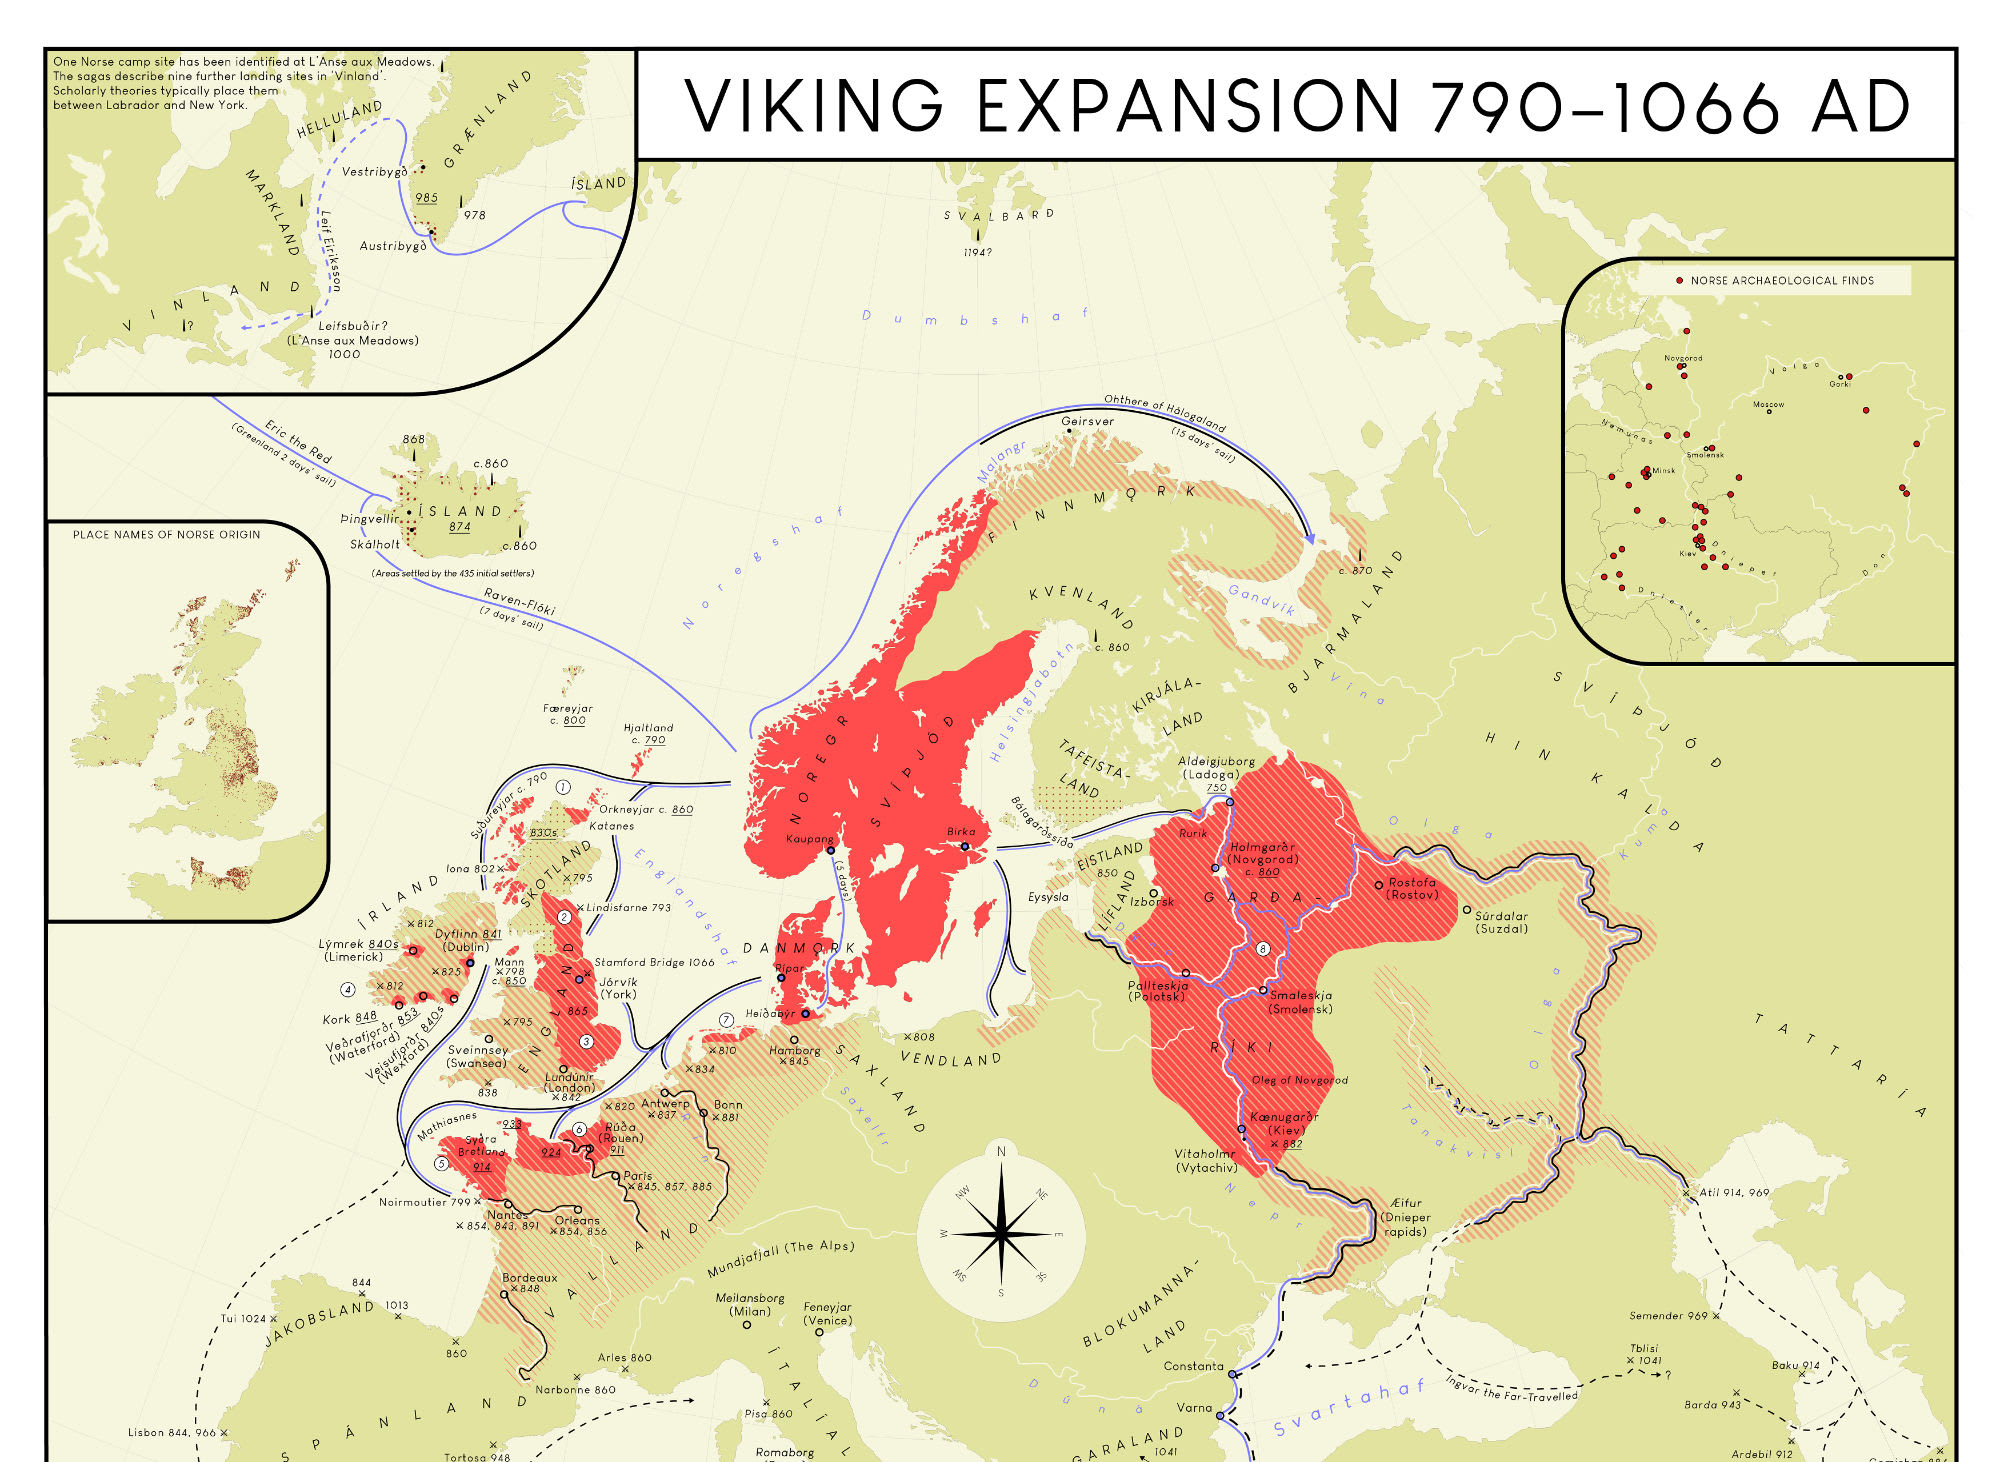 Viking Expansion 790-1066 AD